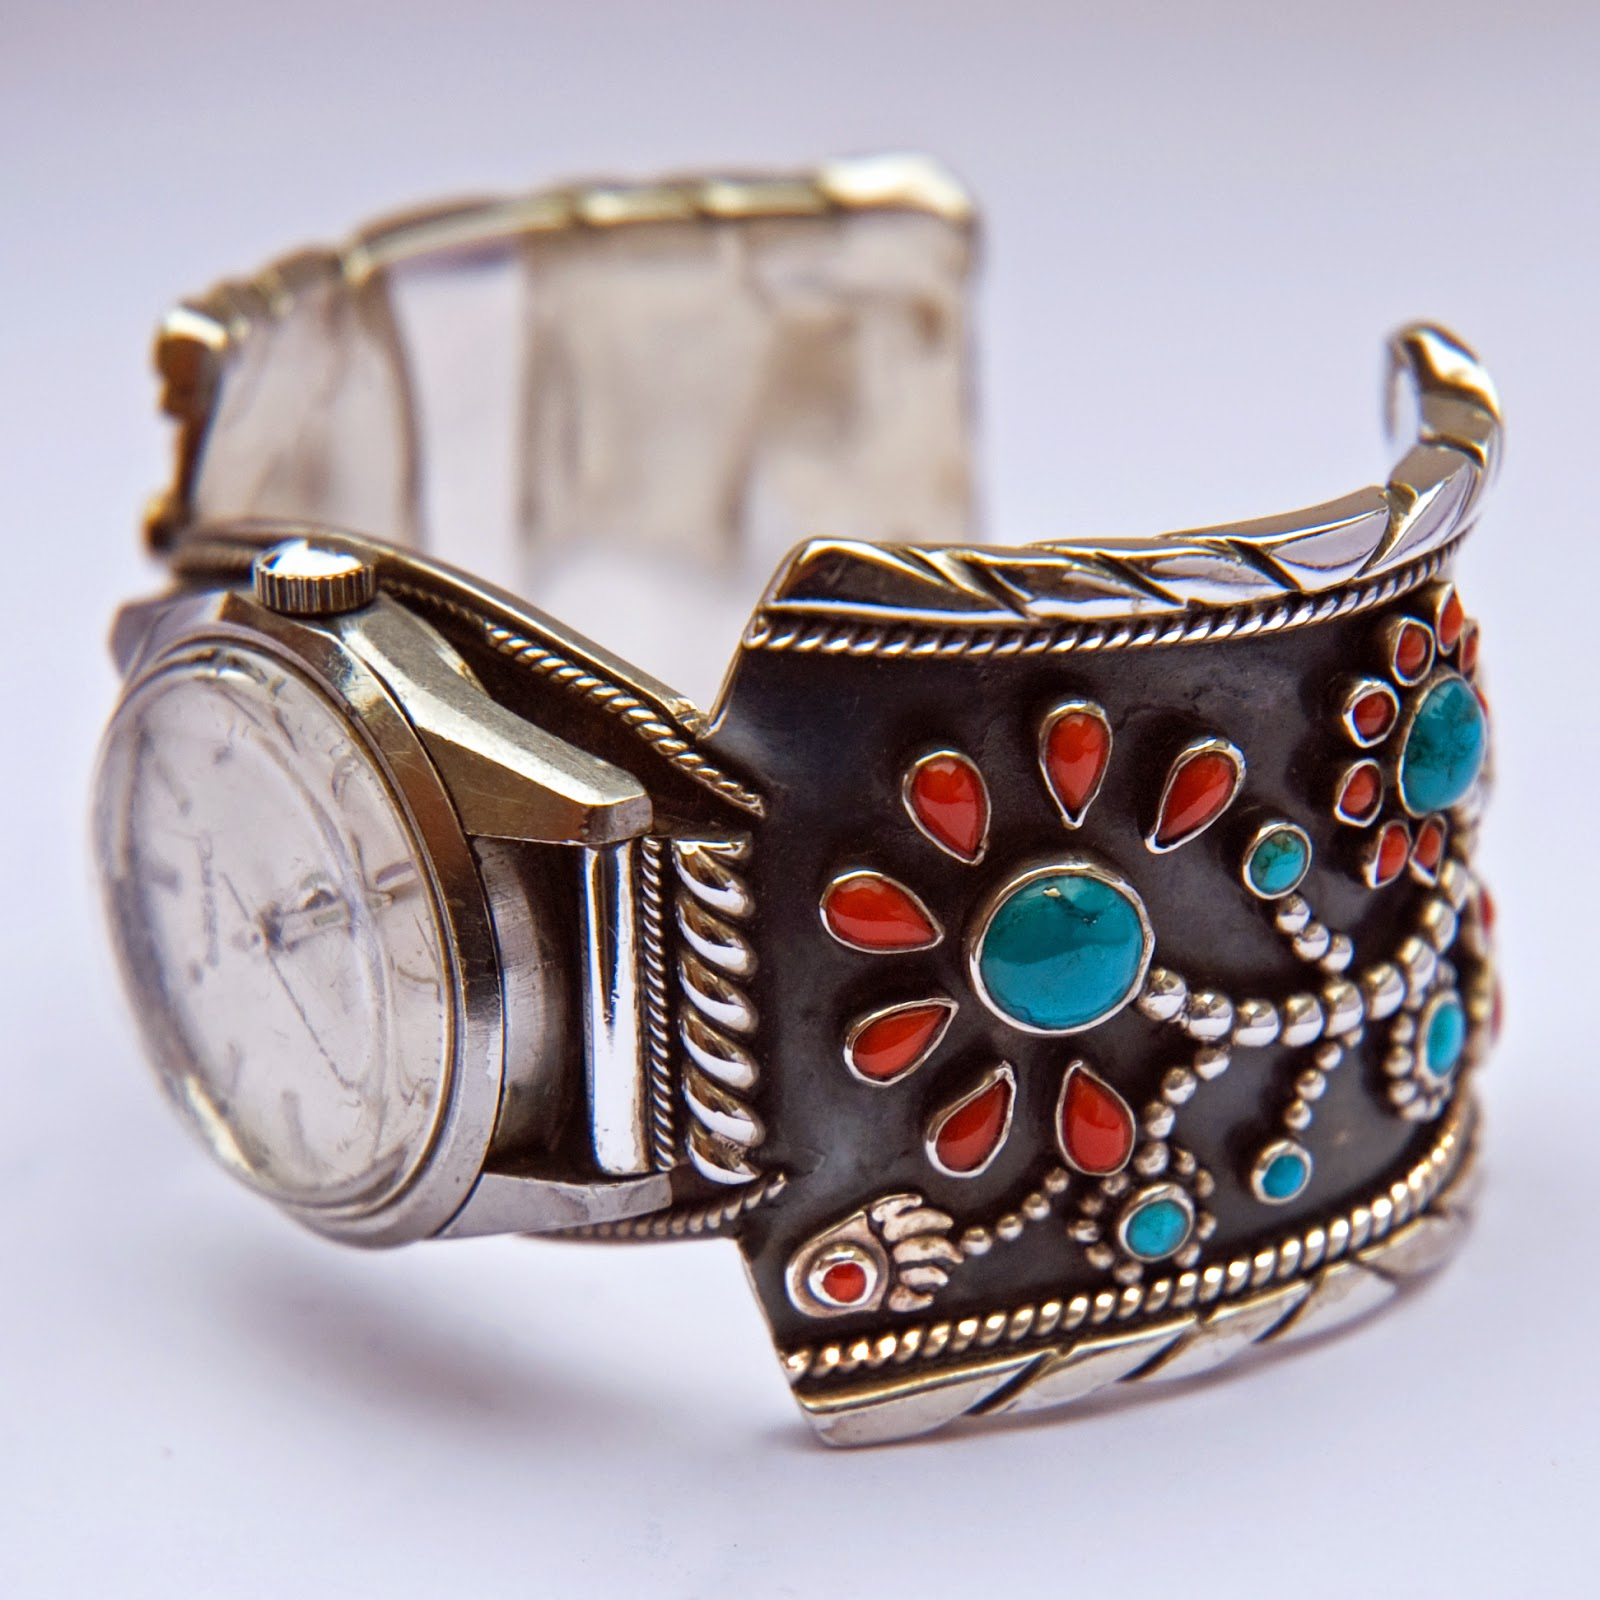 Ojibwe floral design wristwatch cuff band